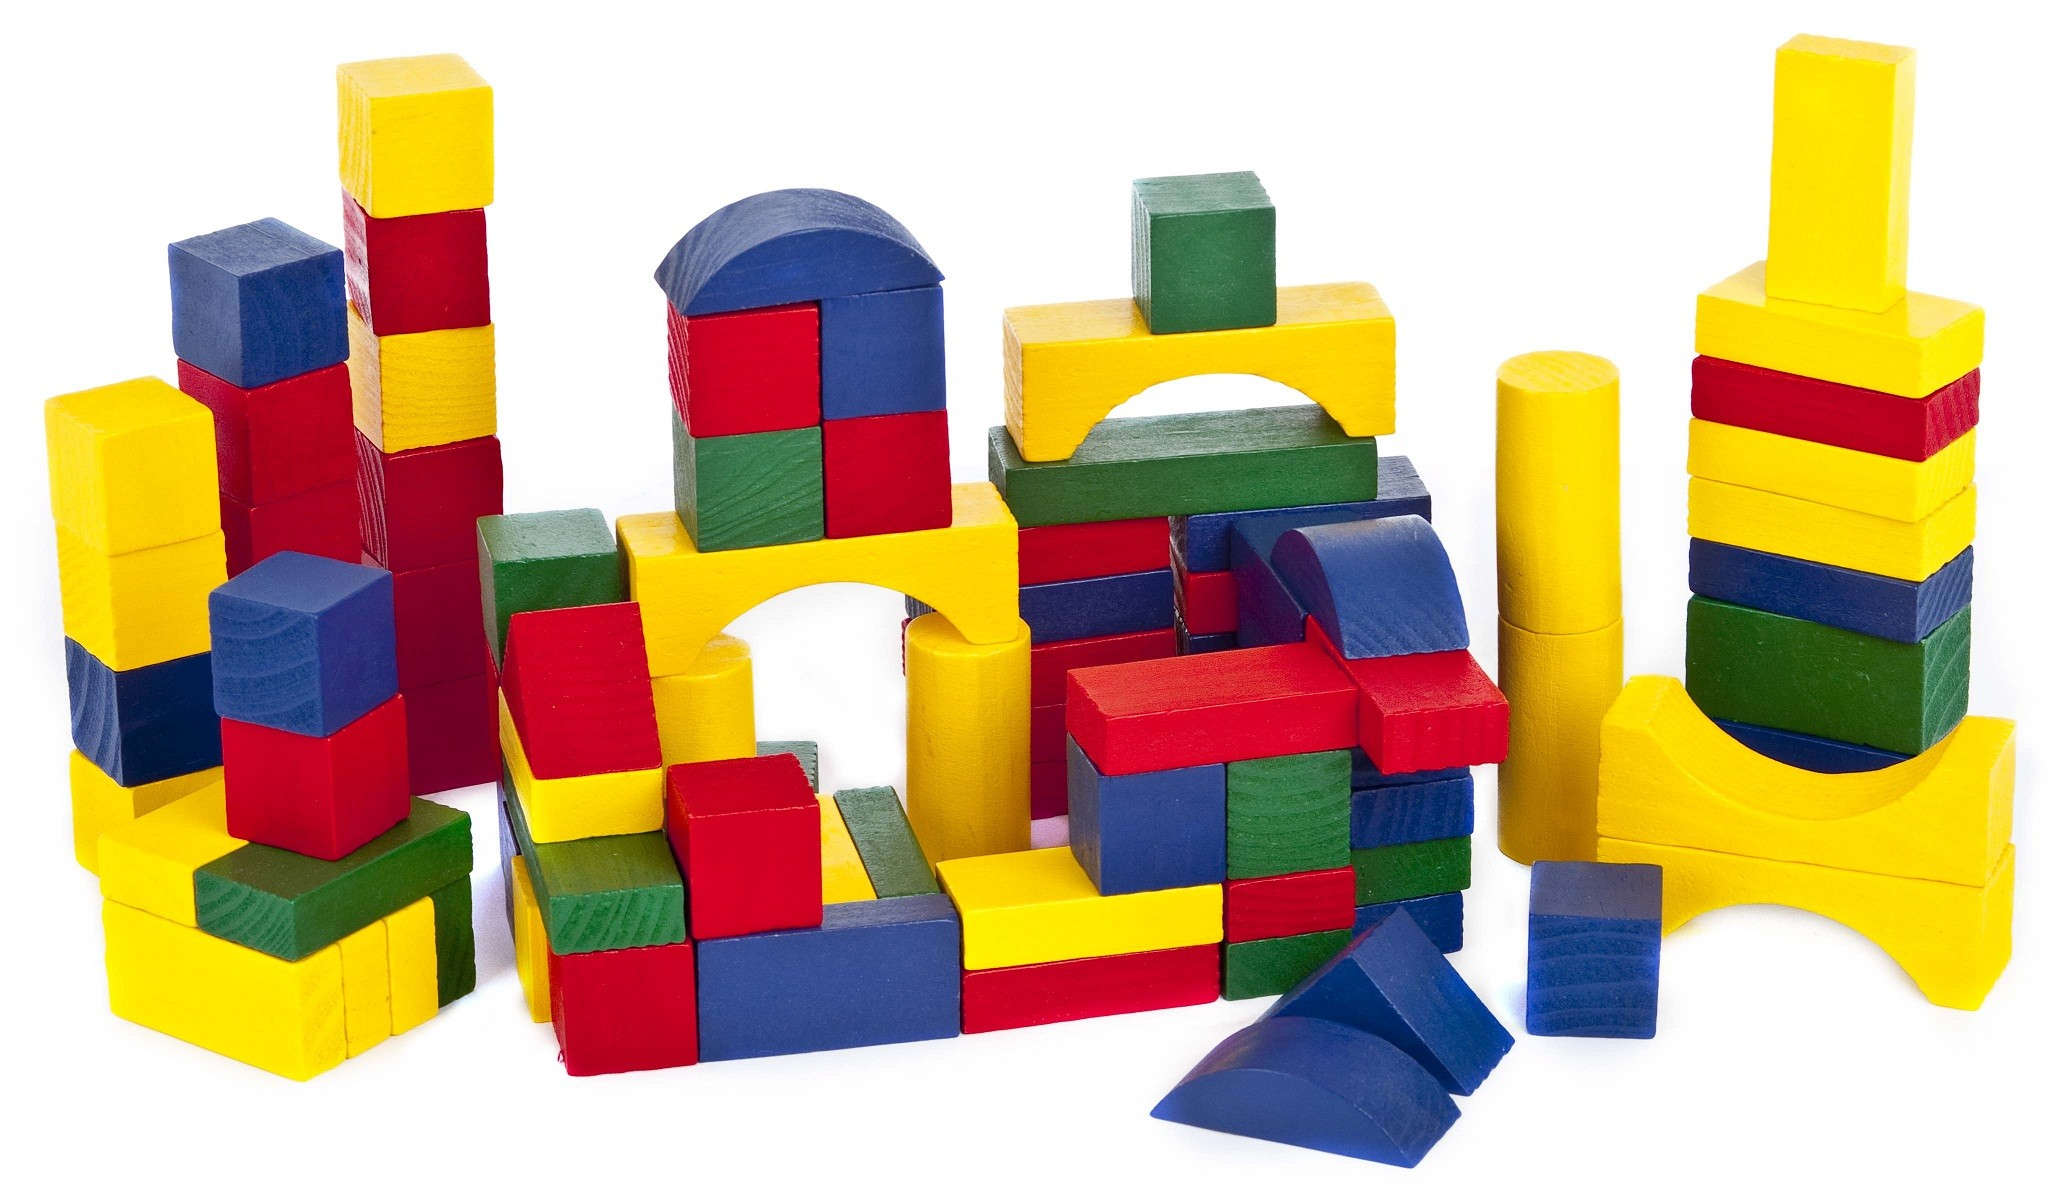 Building Construction Toys : Wooden construction building blocks bricks children s wood